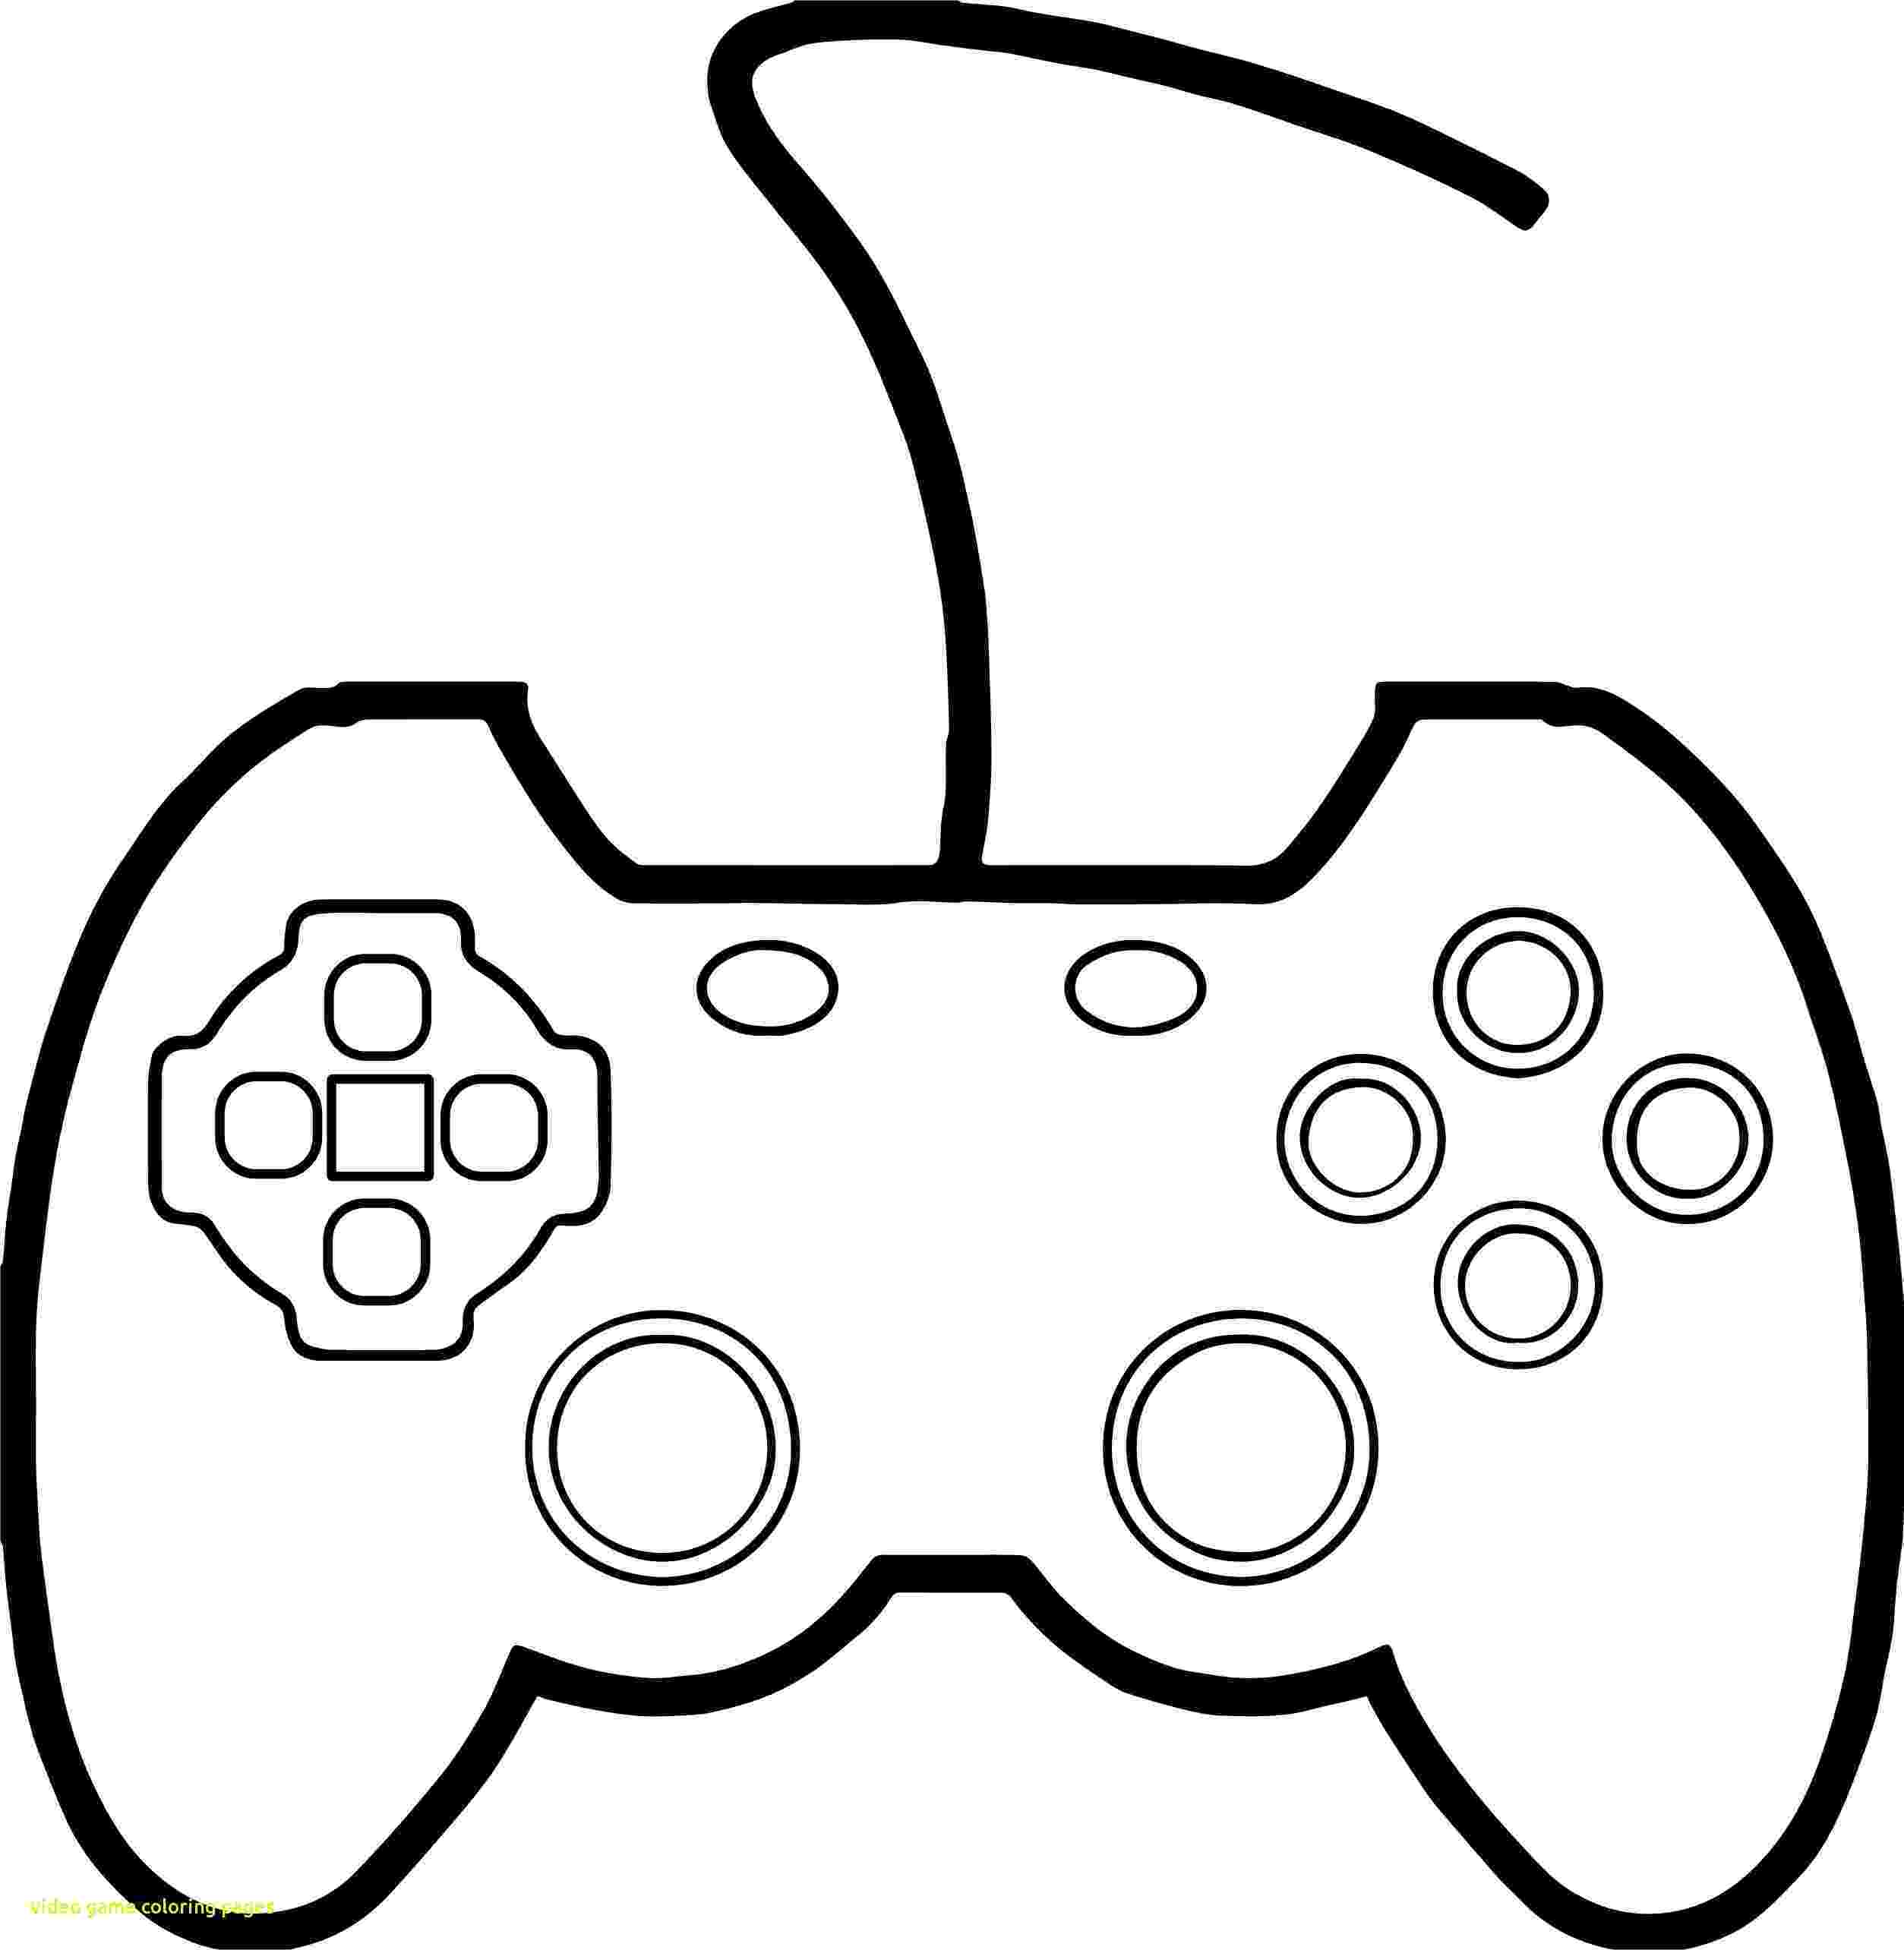 colouring pages free online games xbox coloring pages to print free coloring sheets pages online colouring free games